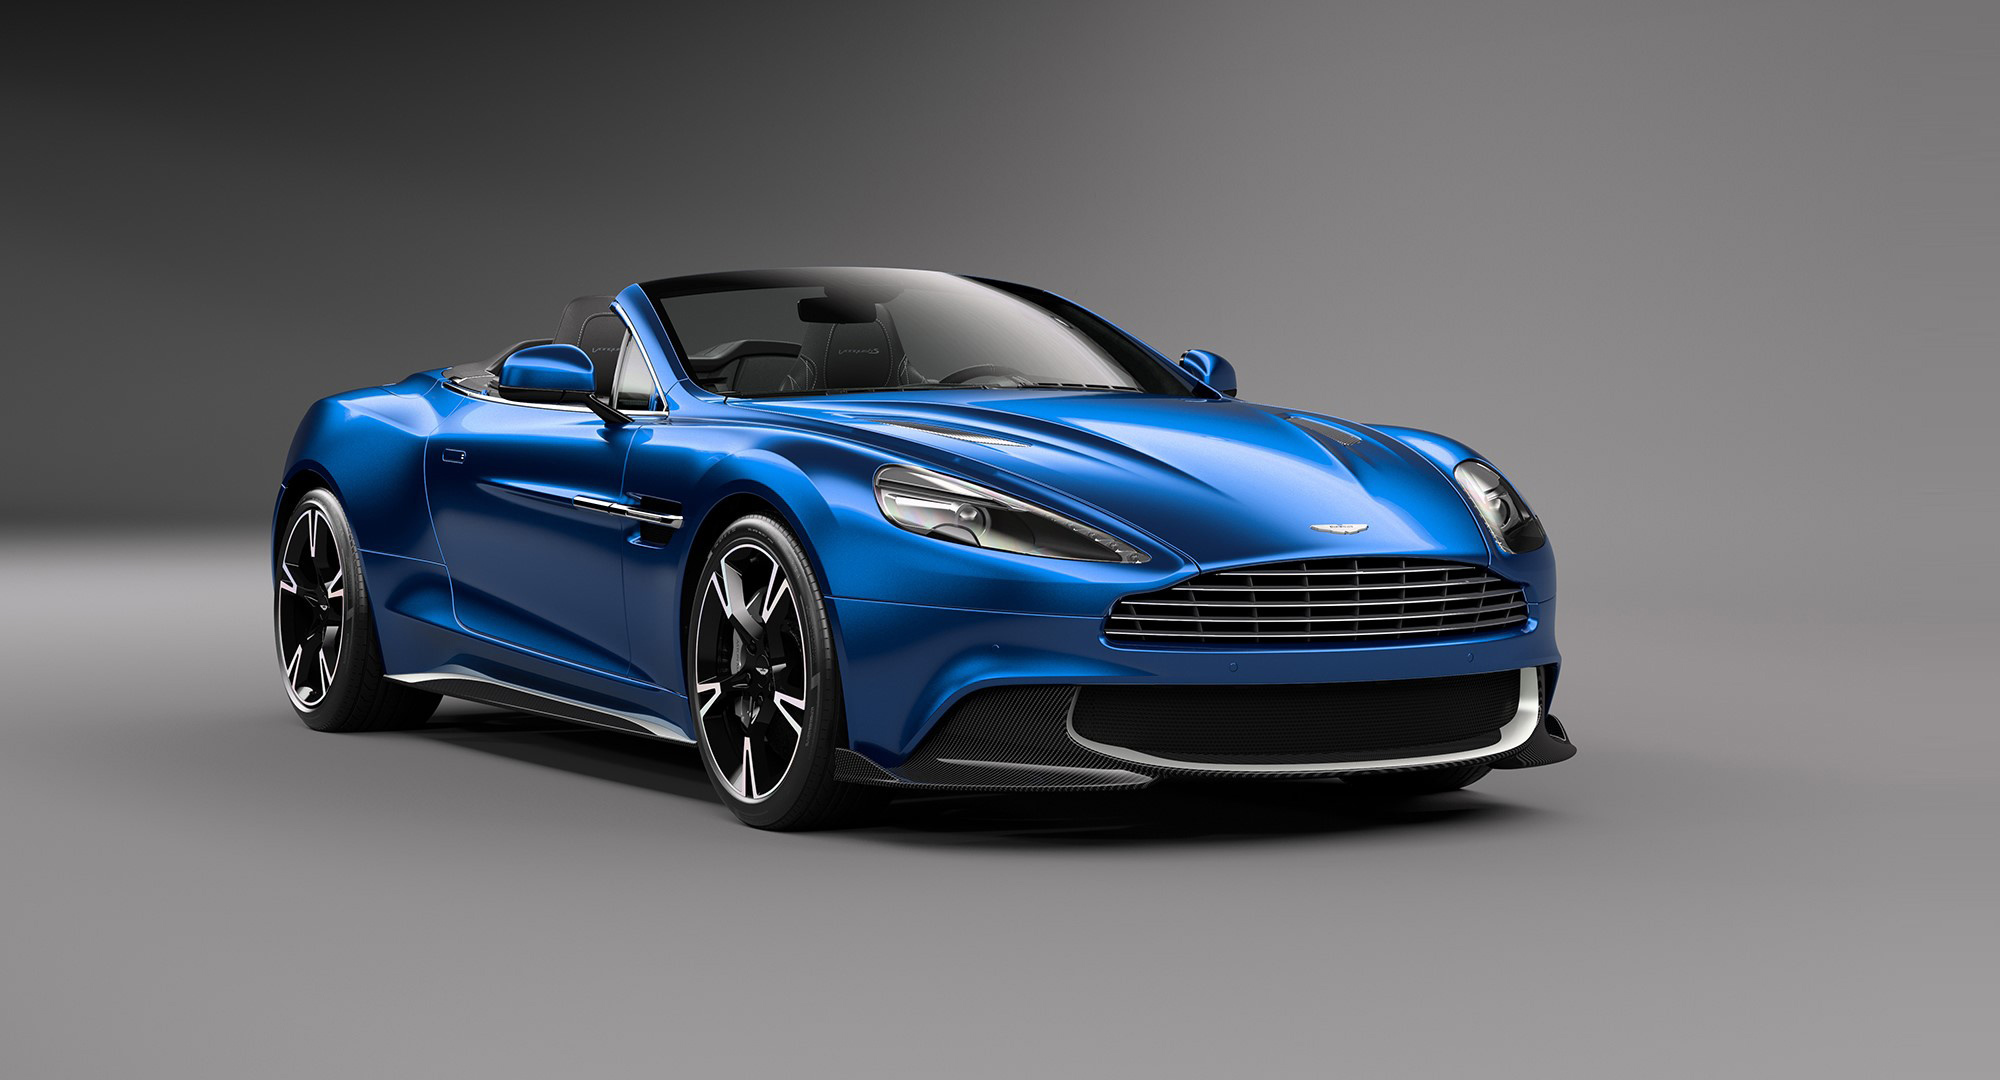 aston martin vanquish s volante wallpapers images photos pictures. Cars Review. Best American Auto & Cars Review